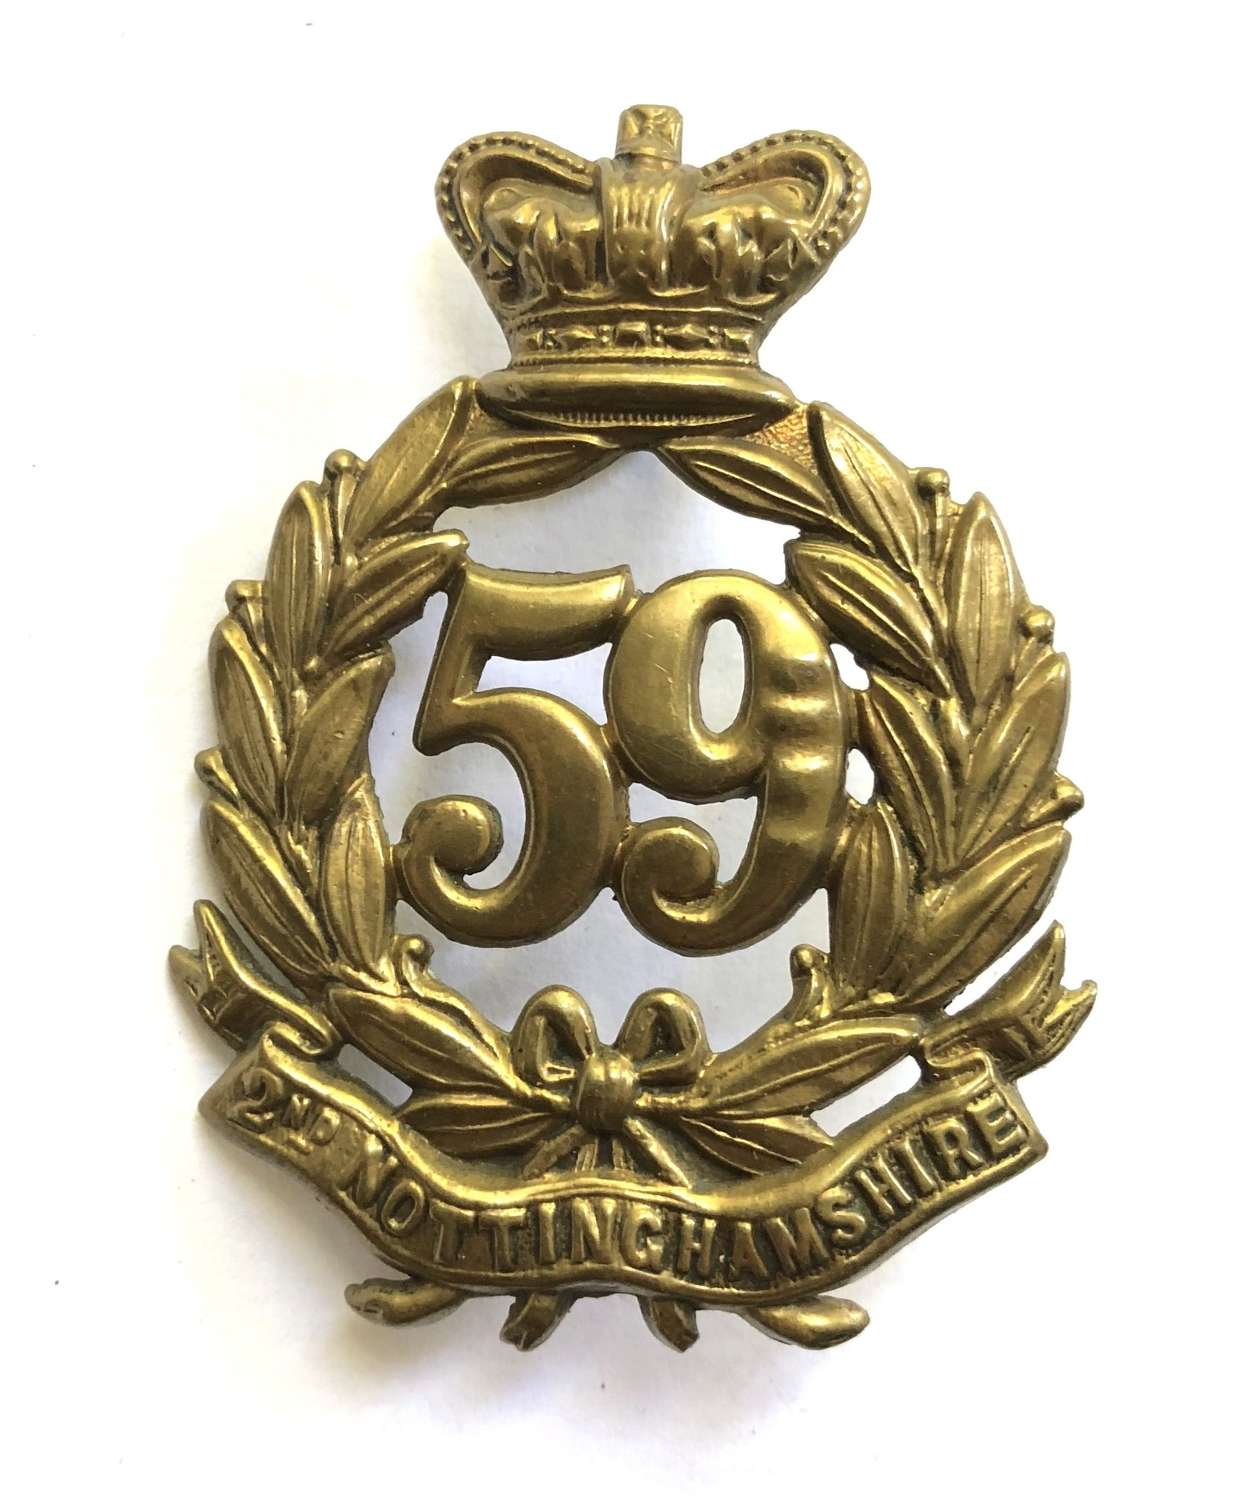 59th (2nd Nottinghamshire) Regiment of Foot Victorian OR's glengarry